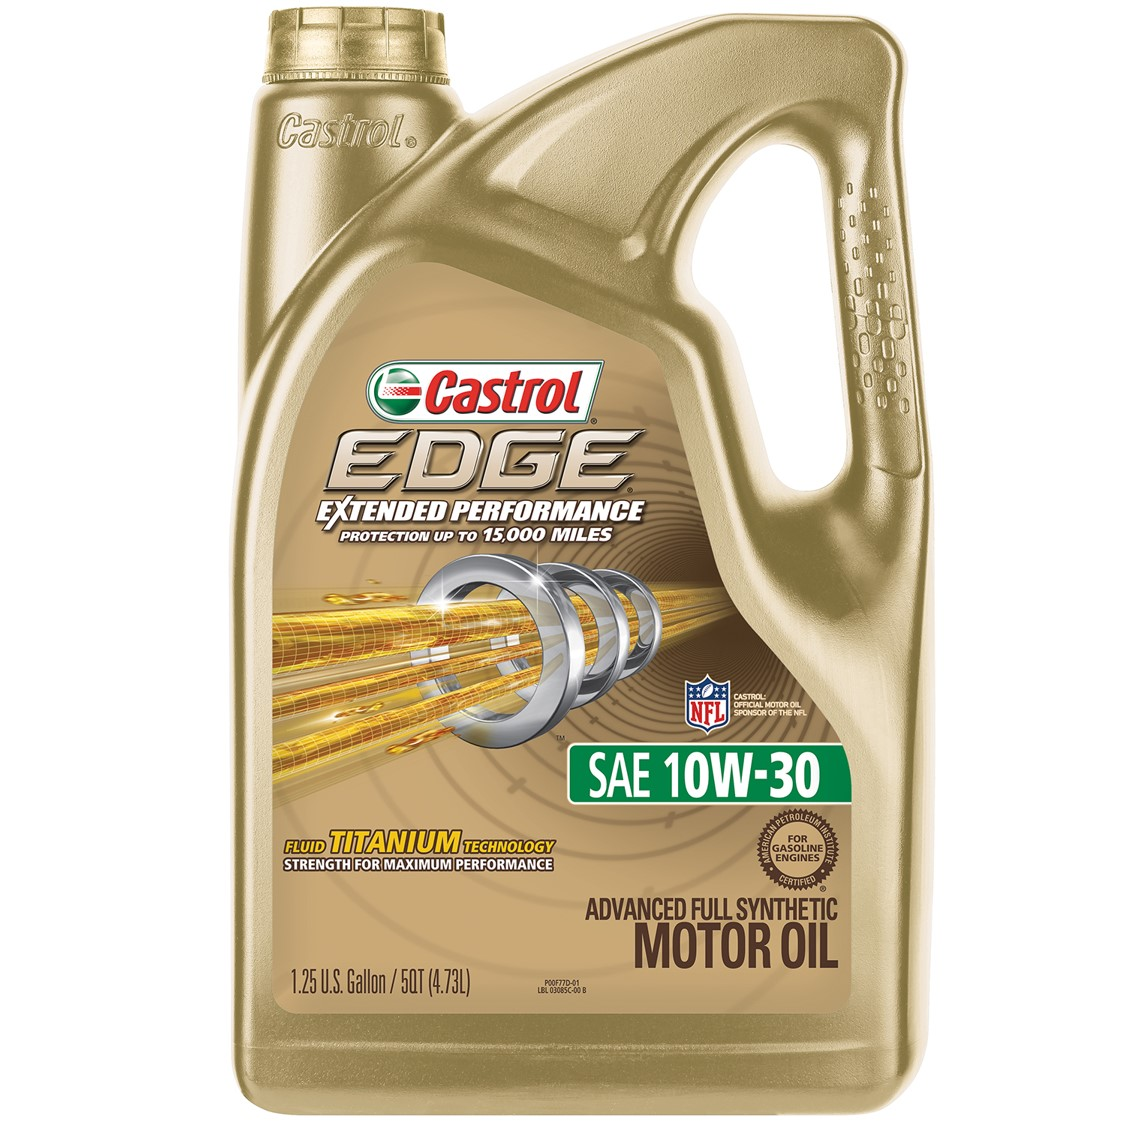 Castrol EDGE Extended Performance 10W-30 Full Synthetic Motor Oil, 5 QT by Castrol